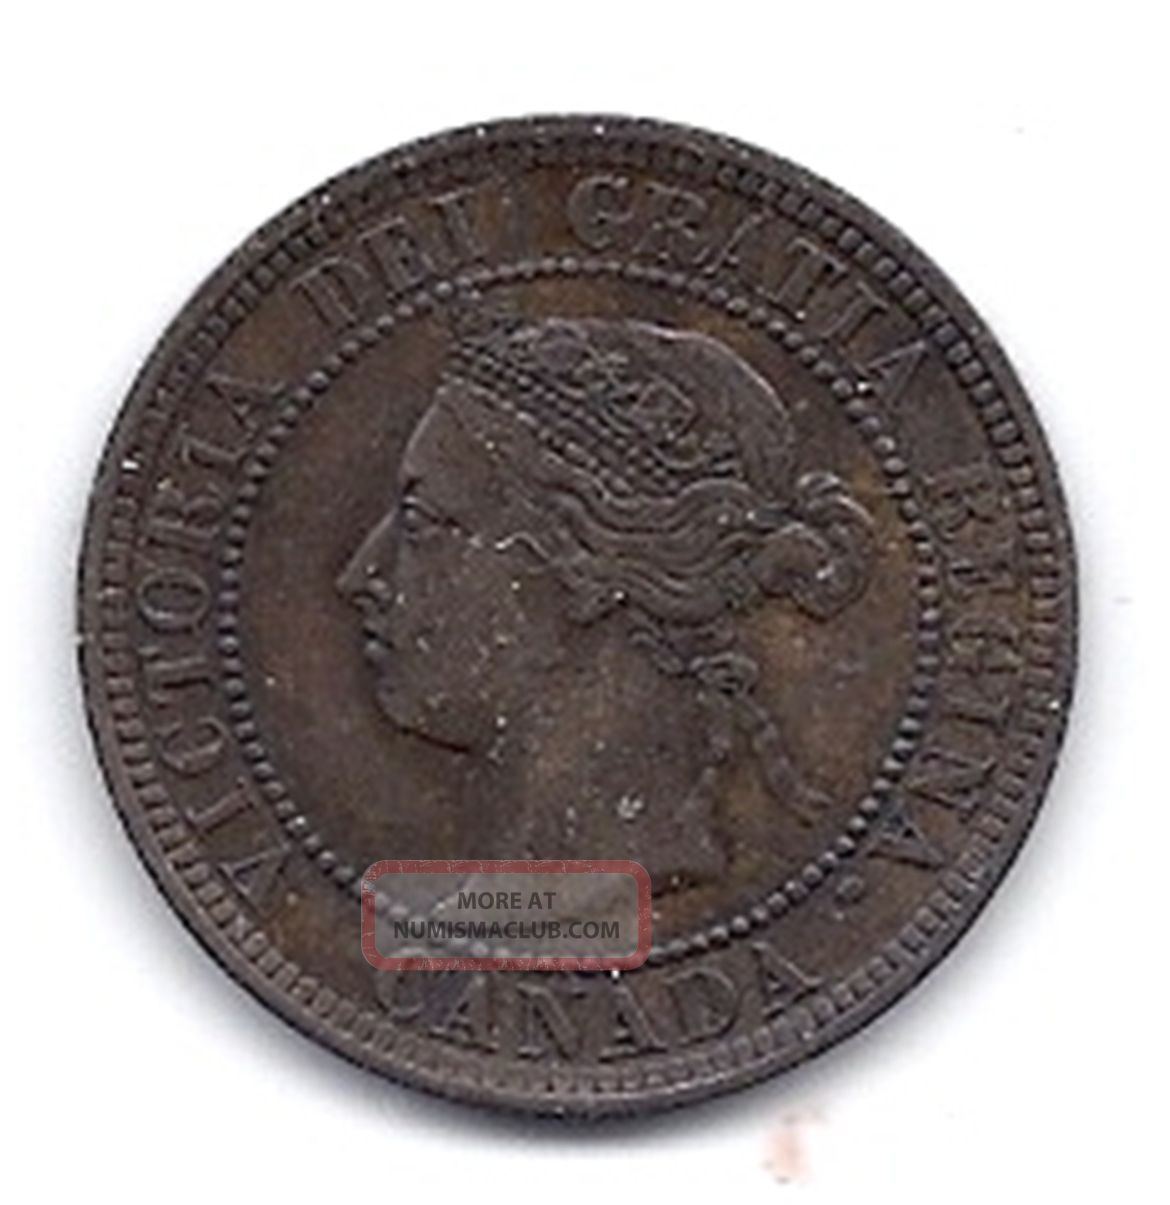 Canada - One Cent - 1888 - Km - 7 - Almost Uncircuted - Coin. Coins: Canada photo